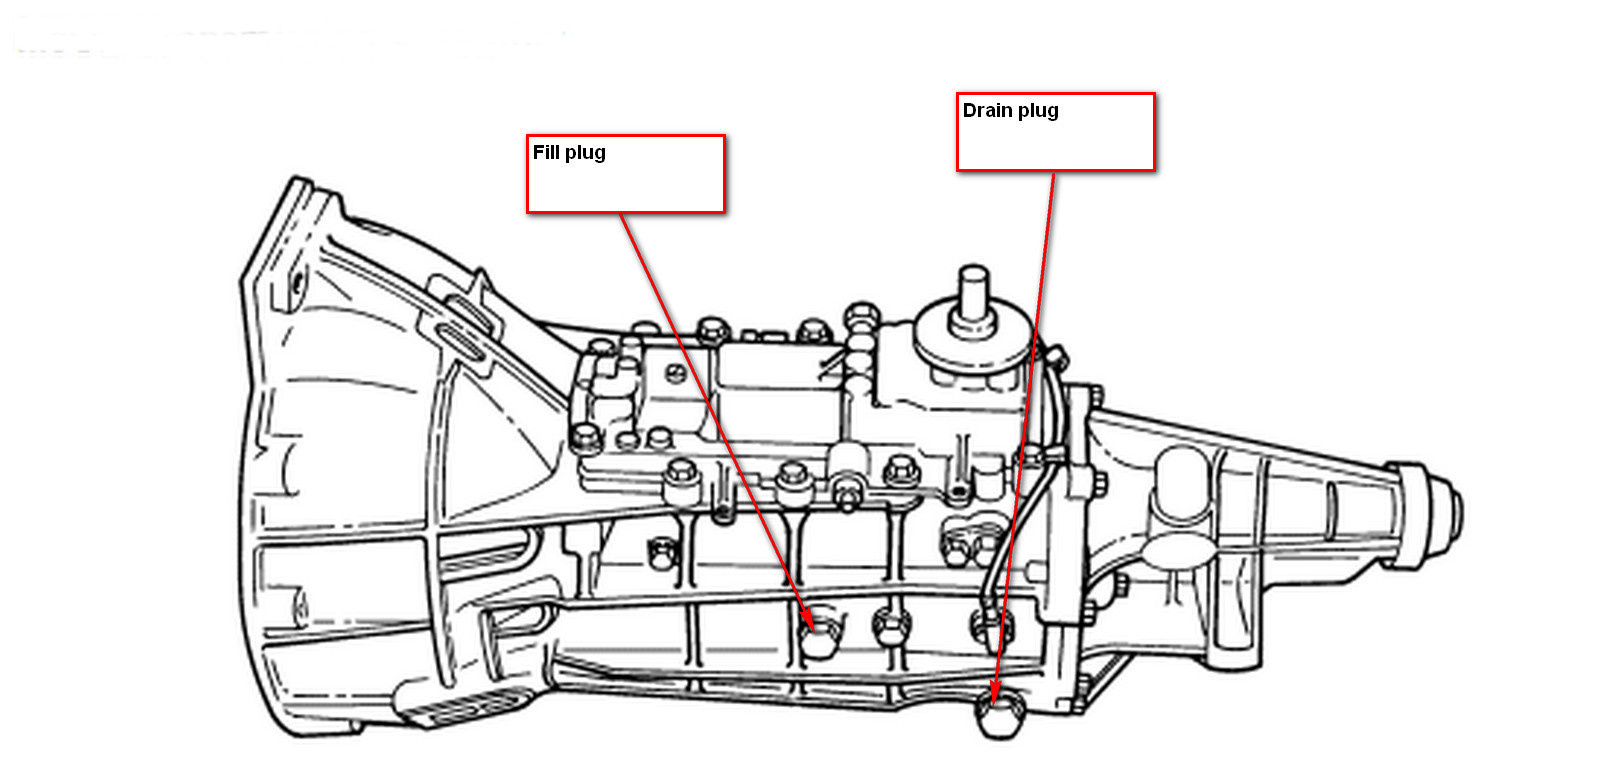 Ford 3 5 Ecoboost Engine Diagram furthermore Ford Escape 2 3 Liter Engine Diagram further Diagrama Sensor De Temperatura as well 2003 Ford Ranger Speed Sensor Location likewise F150 Ecoboost Turbo. on 1289 ford escape location cylinder head temperature sensor